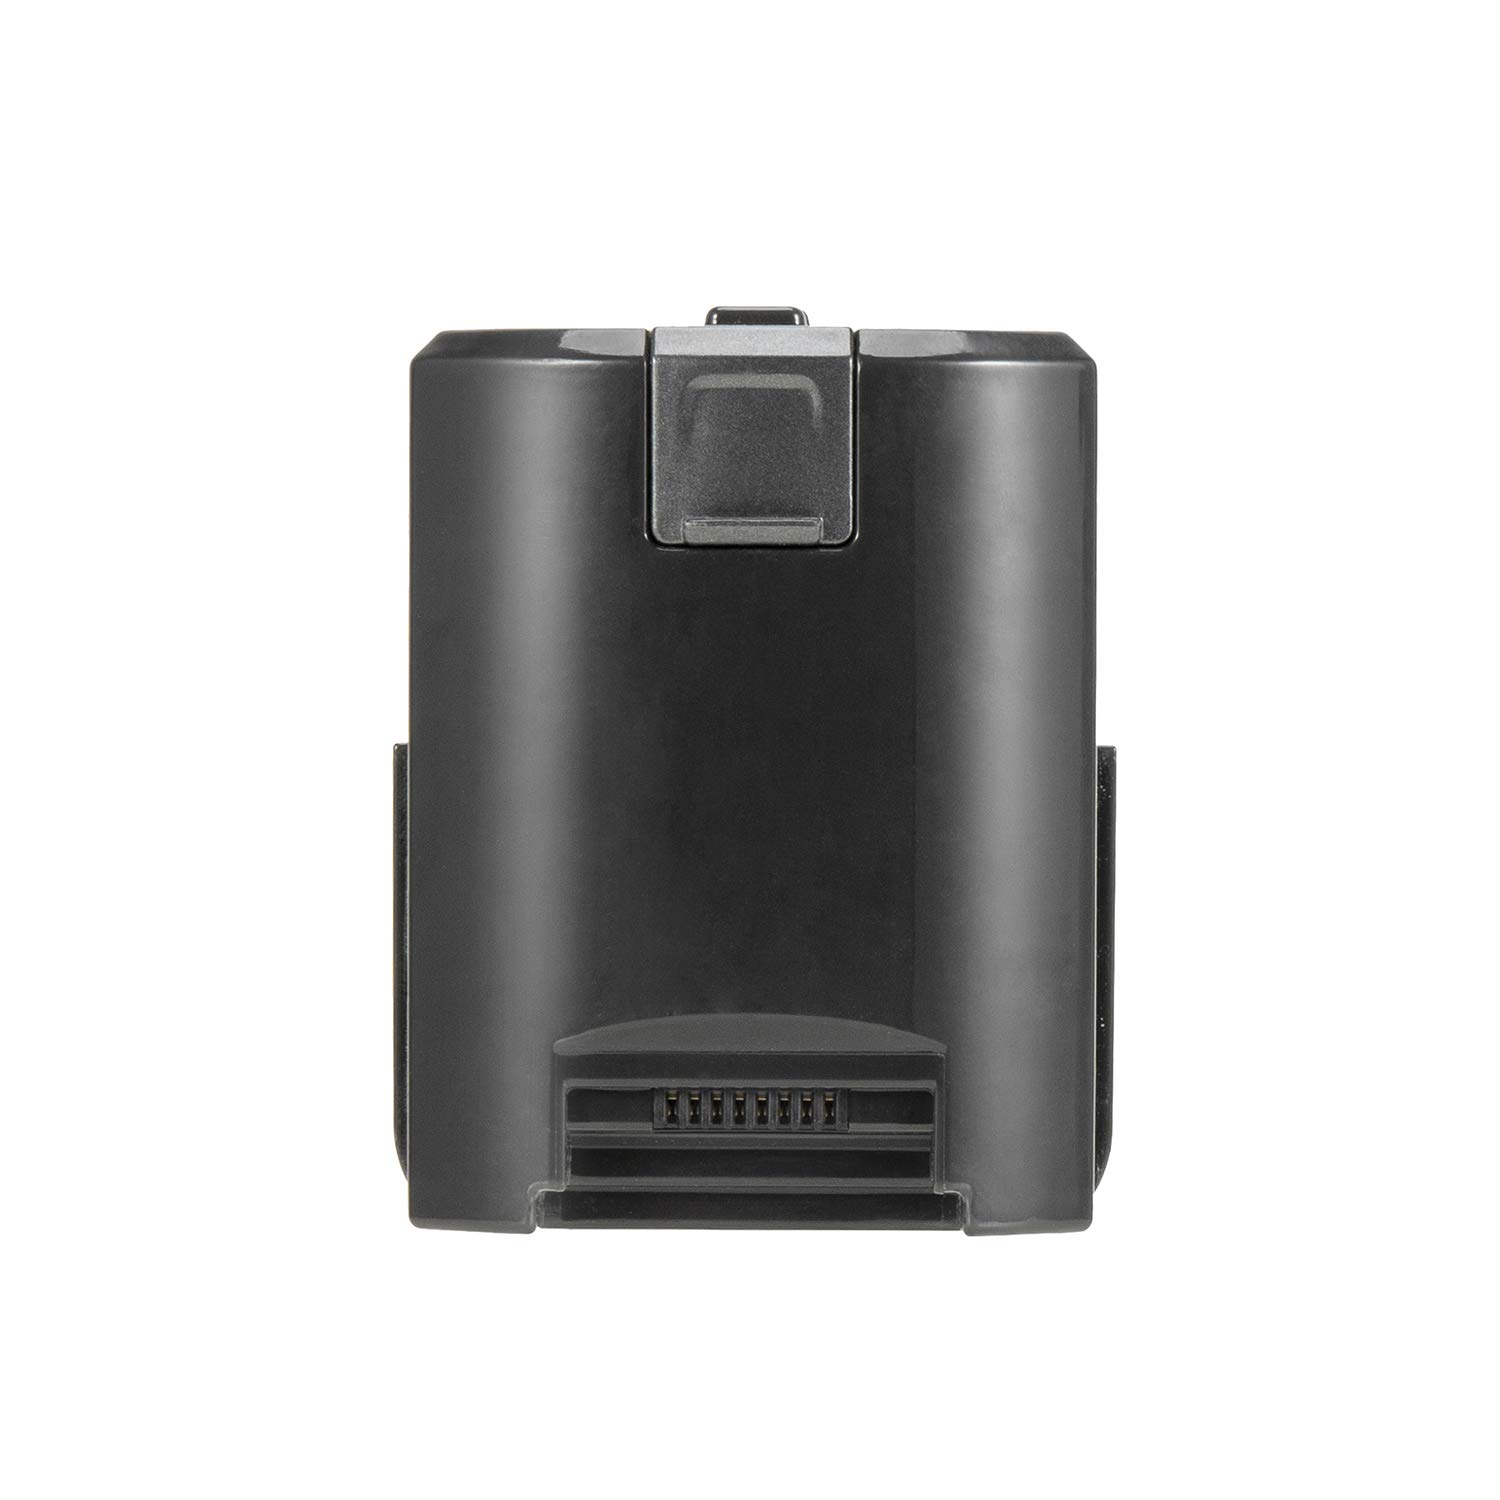 MOOSOO Rechargeable Li-on Battery, Replacement Accessories for XL-618B Only by MOOSOO M